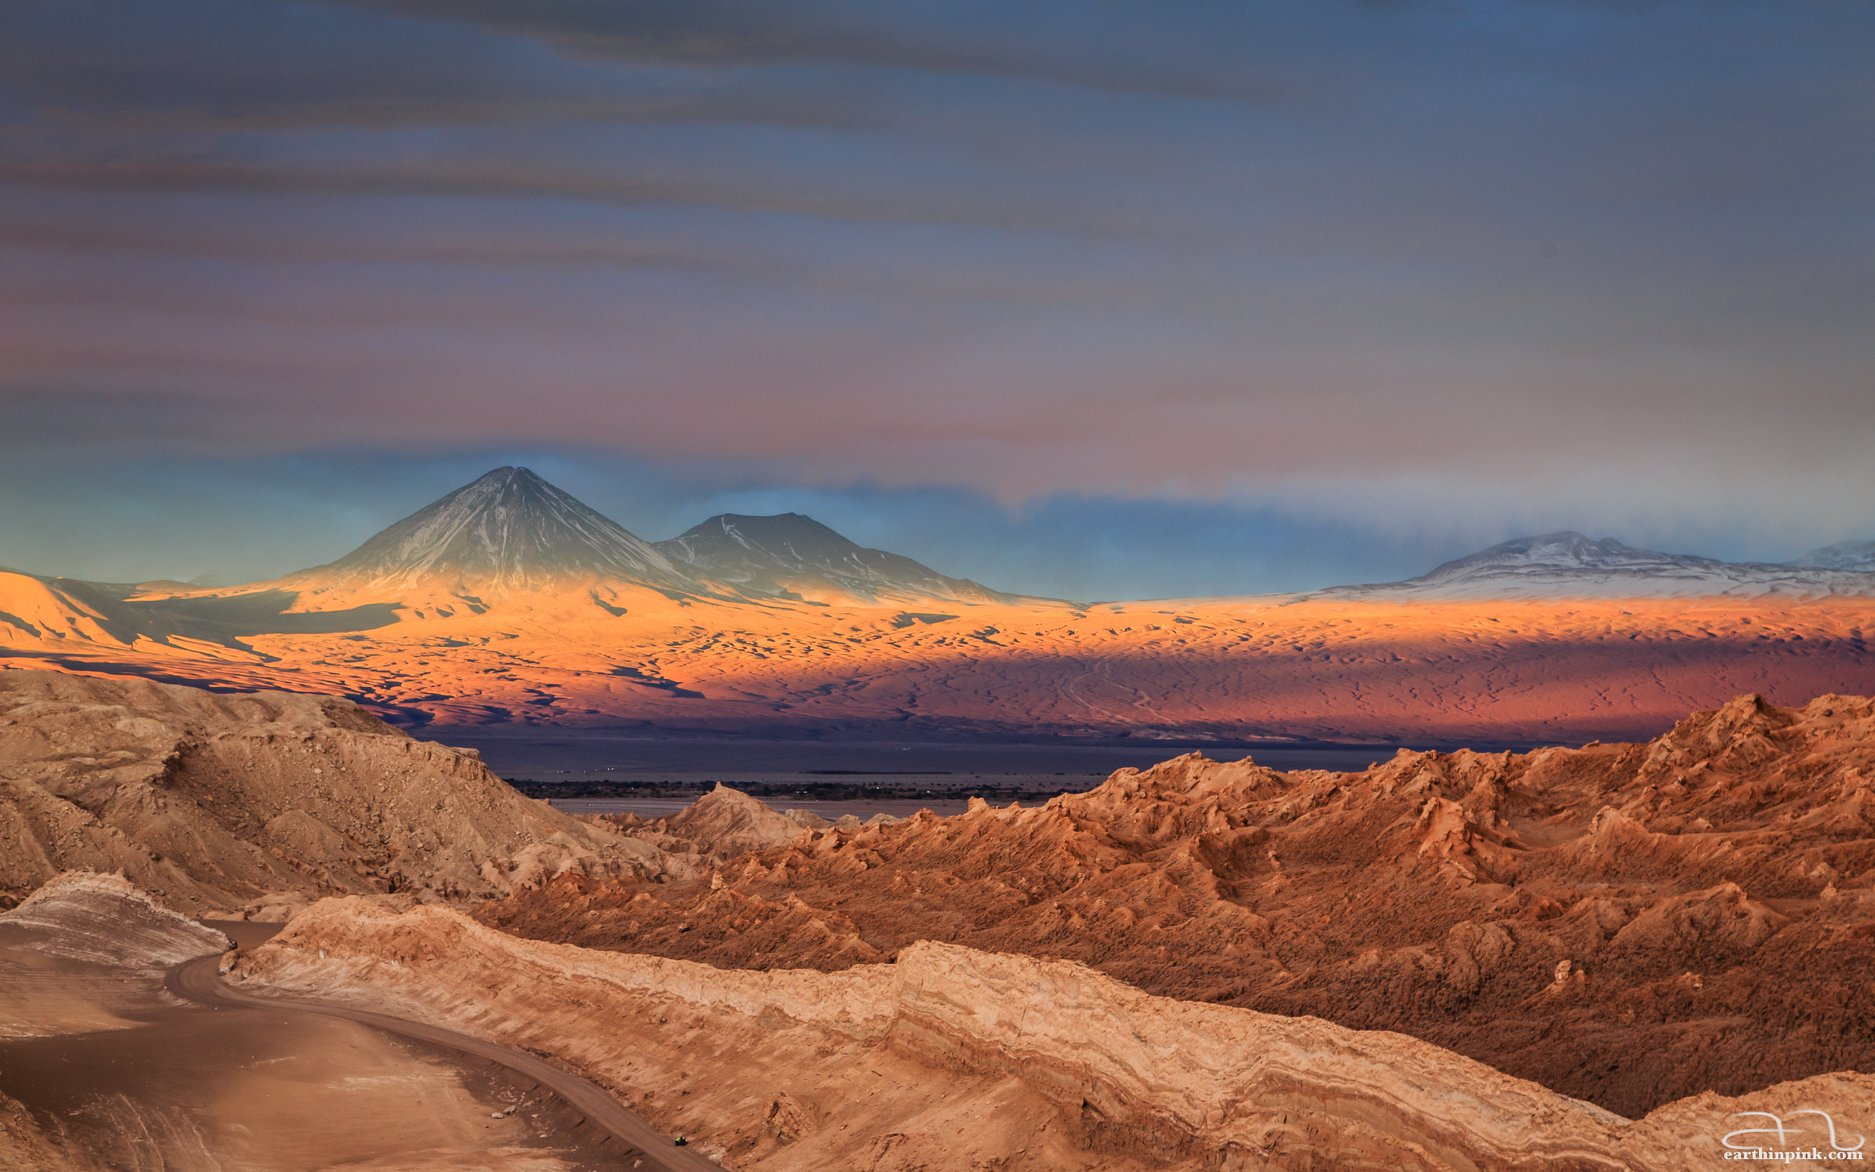 Sunset over Valley of the Moon, San Pedro de Atacama, Chile